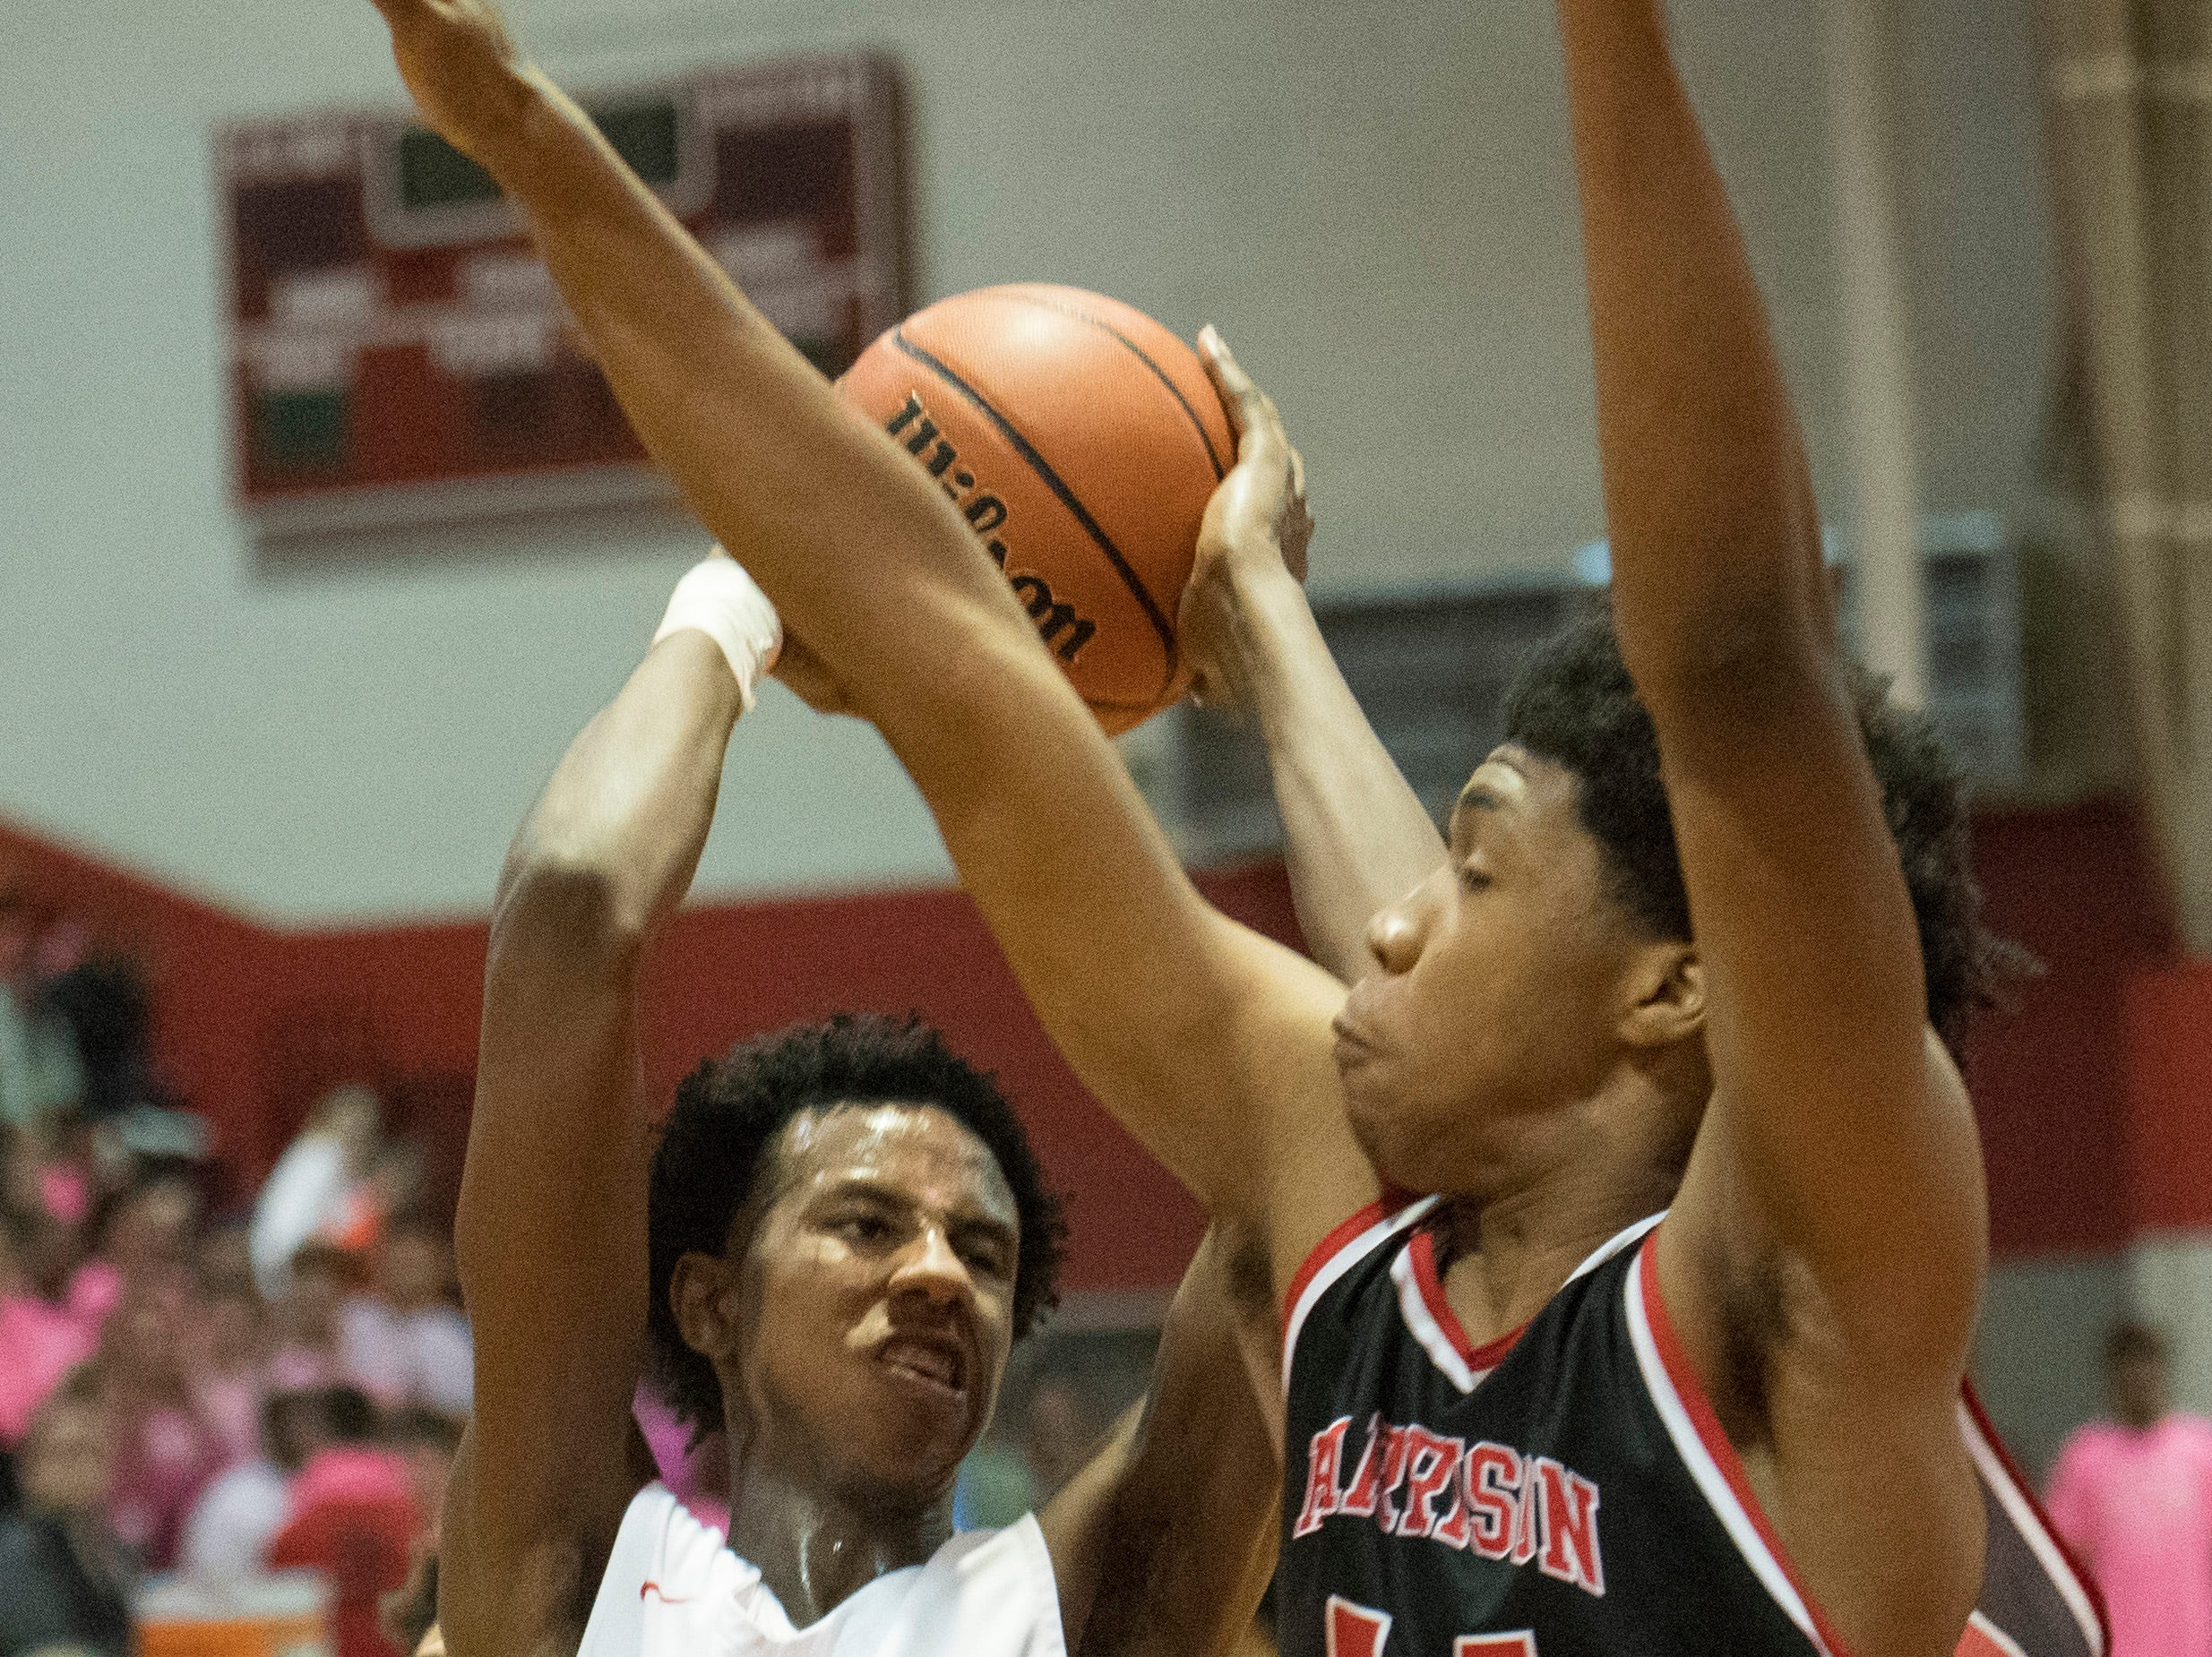 Bosse's Kiyron Powell (52) is forced back by Harrison's Terrence Ringo (44) but fires off a shot during the Harrison vs Bosse game at Bosse High School Feb. 12, 2019. Bosse won